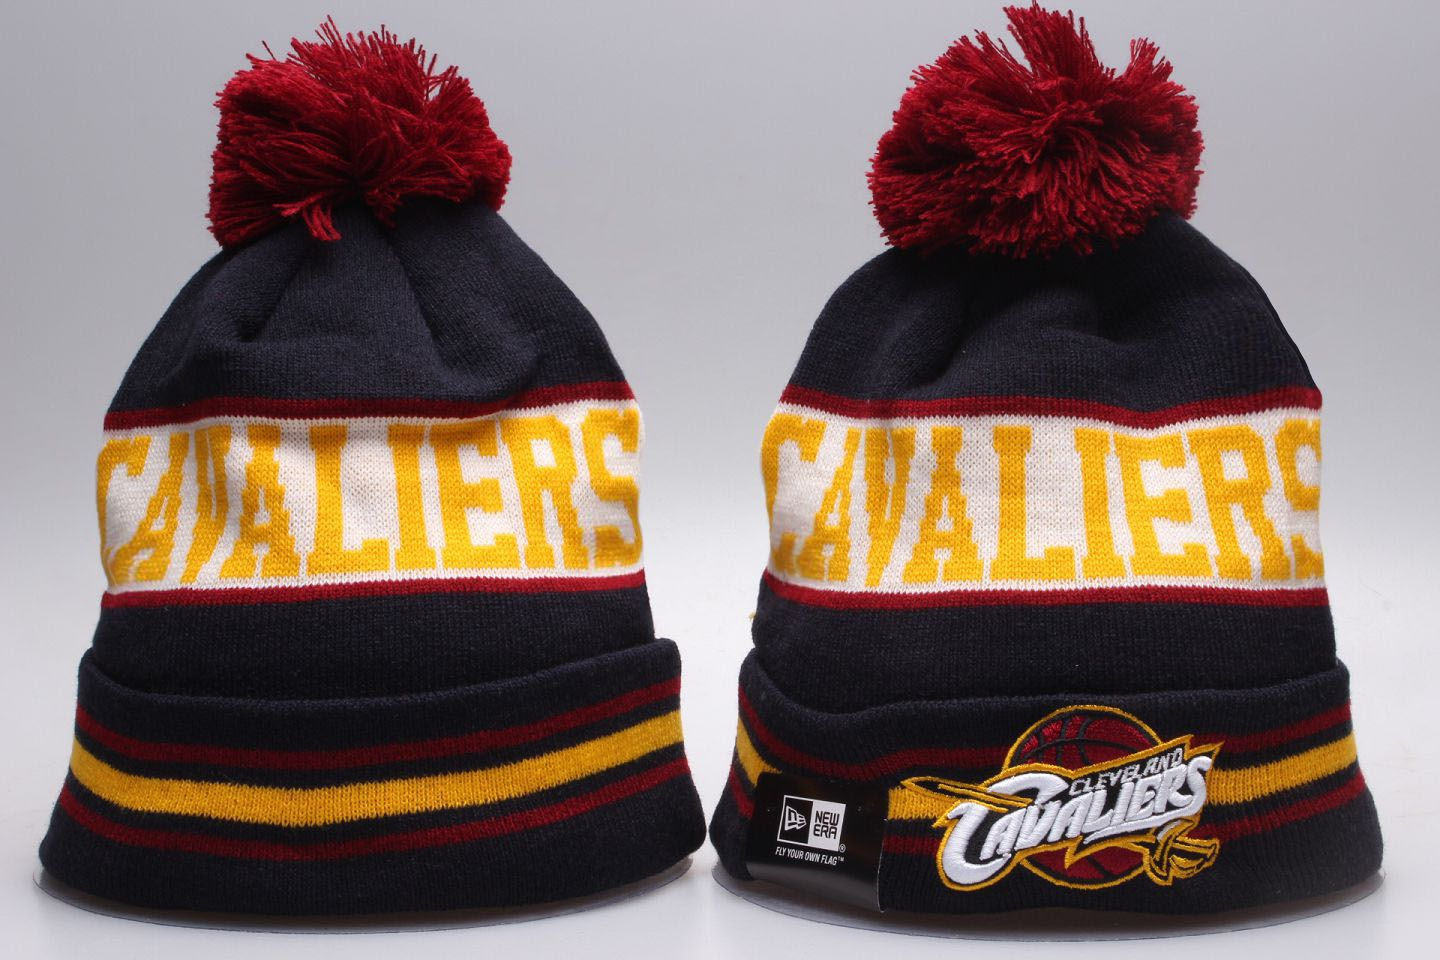 NBA Cleveland Cavaliers Beanie hot hat3